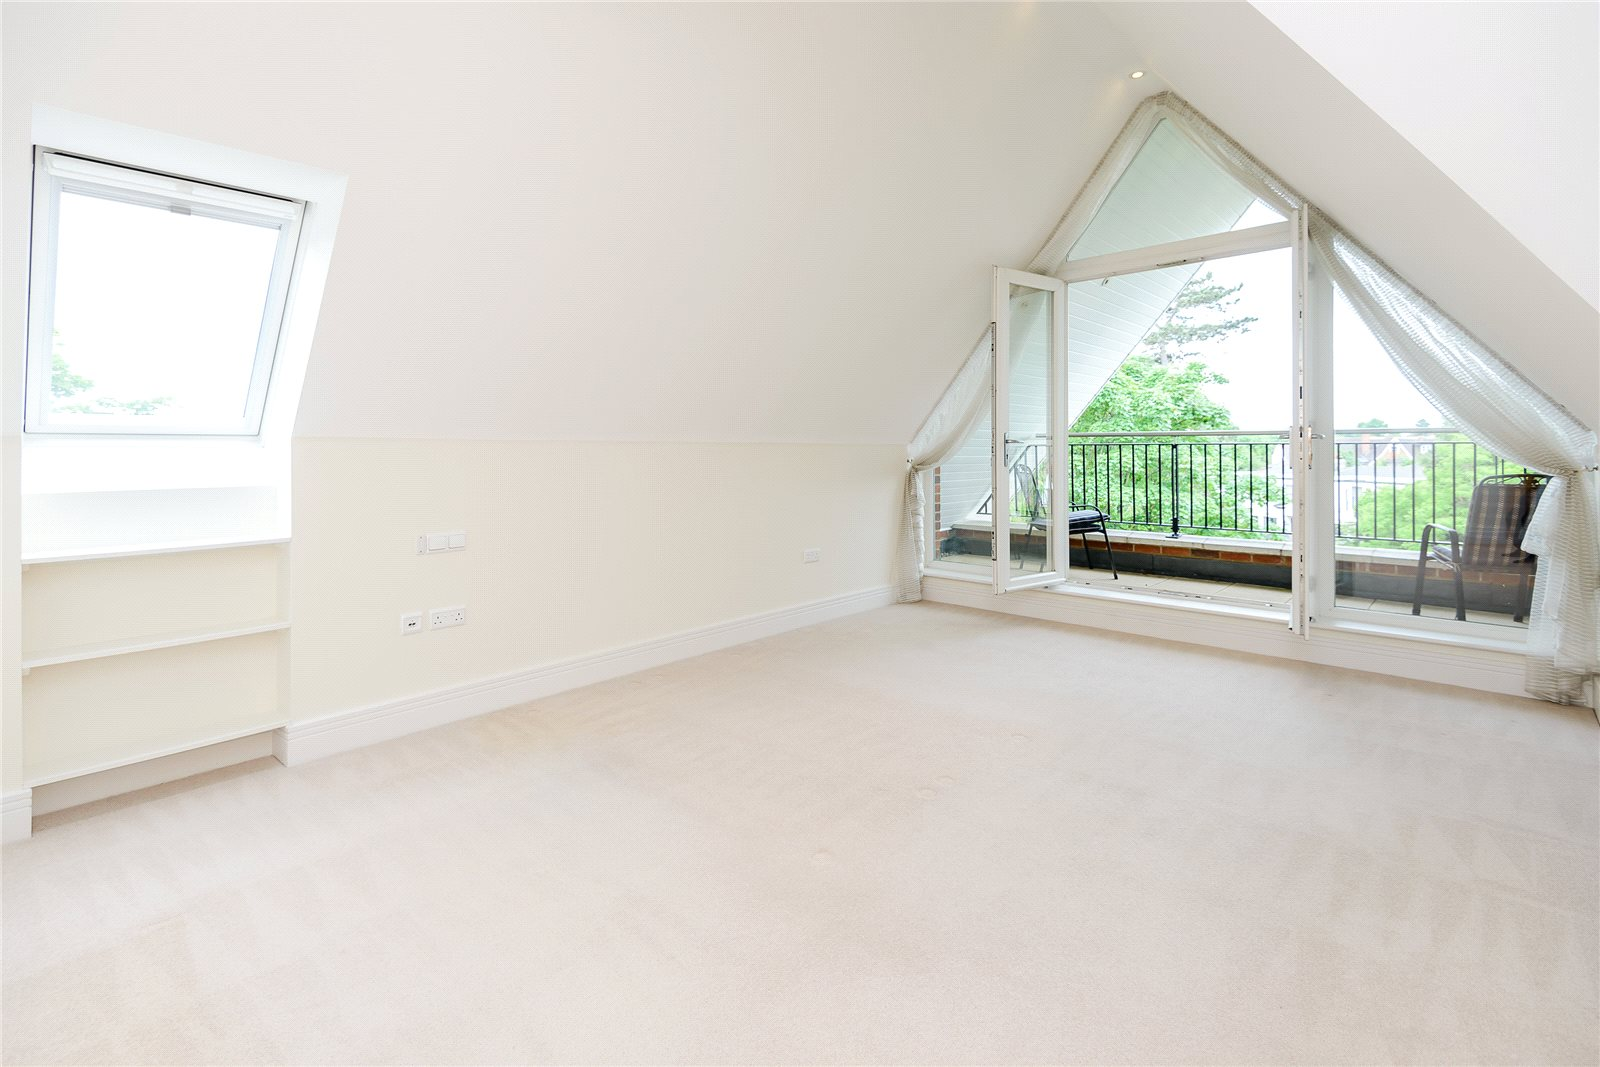 Additional photo for property listing at Claremont Court, 76 Packhorse Road, Gerrards Cross, Buckinghamshire, SL9 Gerrards Cross, Angleterre